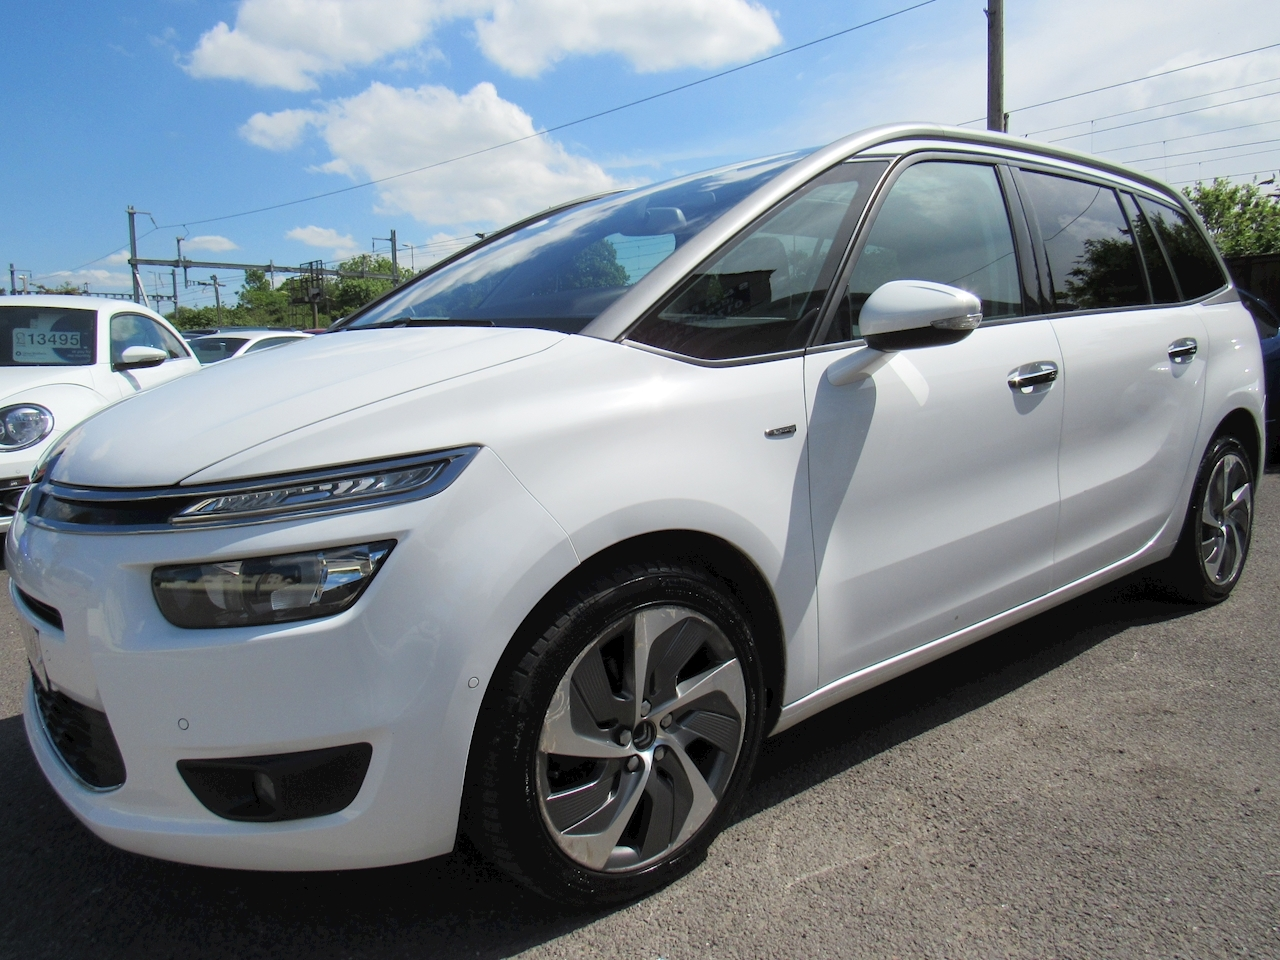 Citroen C4 Picasso Grand Bluehdi Exclusive Plus Eat6 Mpv 2.0 Automatic Diesel